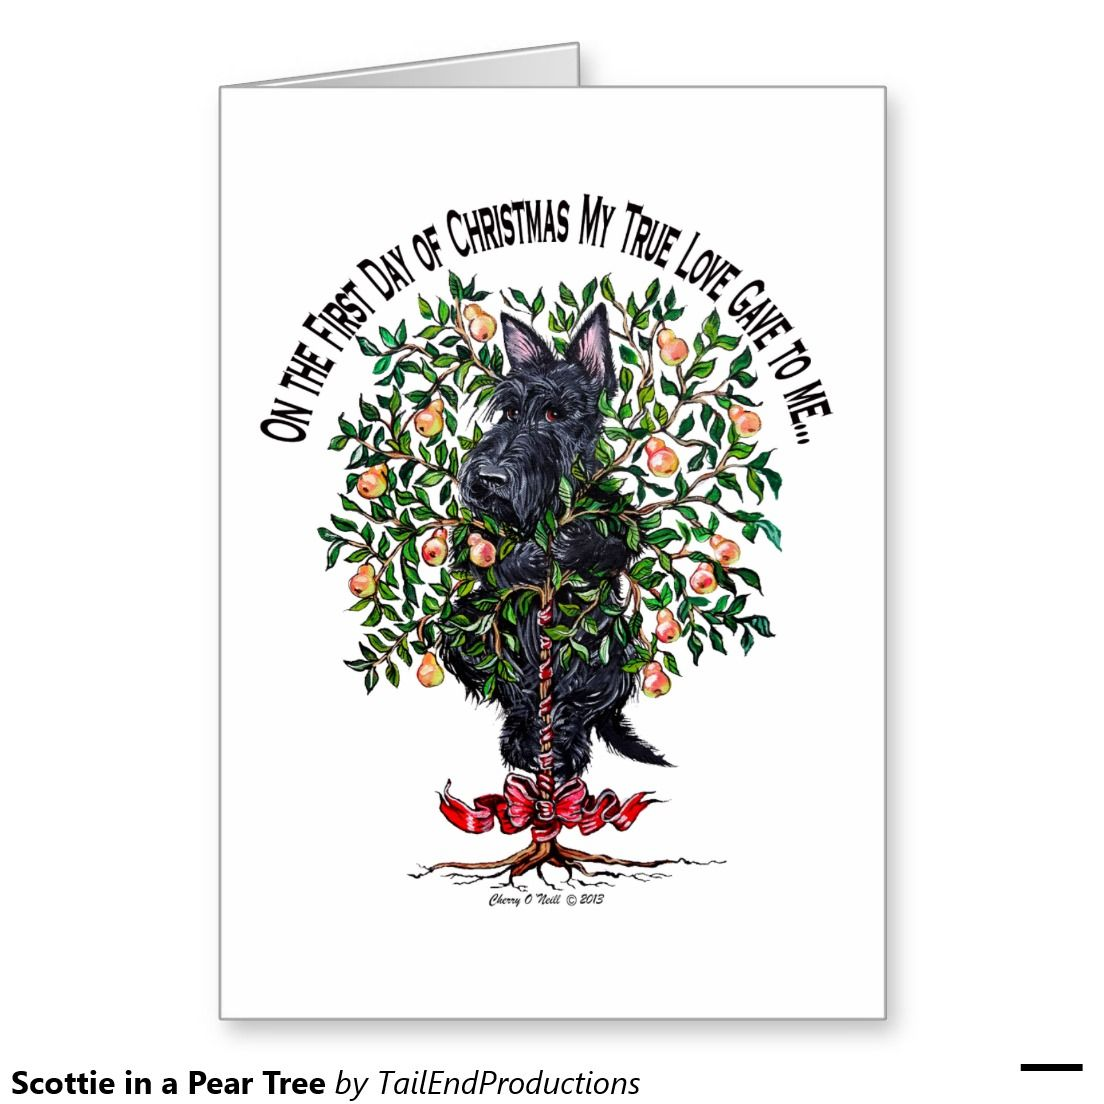 Scottie in a pear tree card trees as and pear tree greetings pear trees scottie in a pear tree greeting card kristyandbryce Gallery